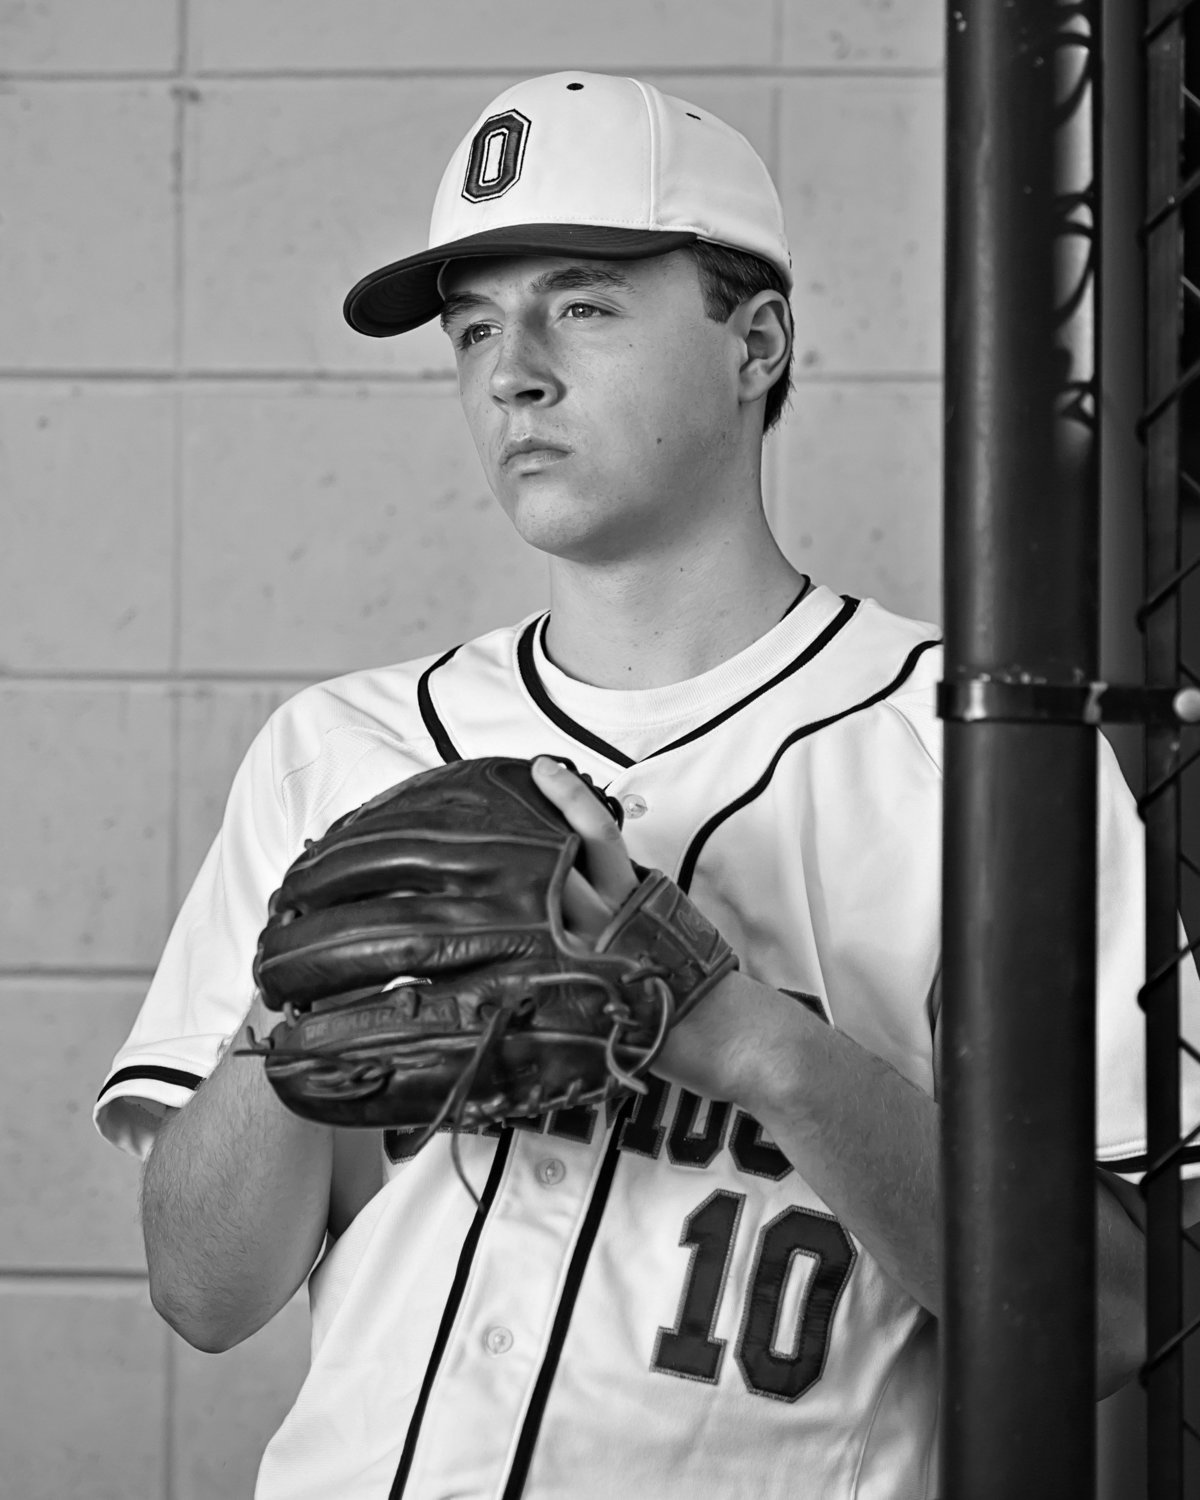 okemos chiefs baseball player senior portraits michigan